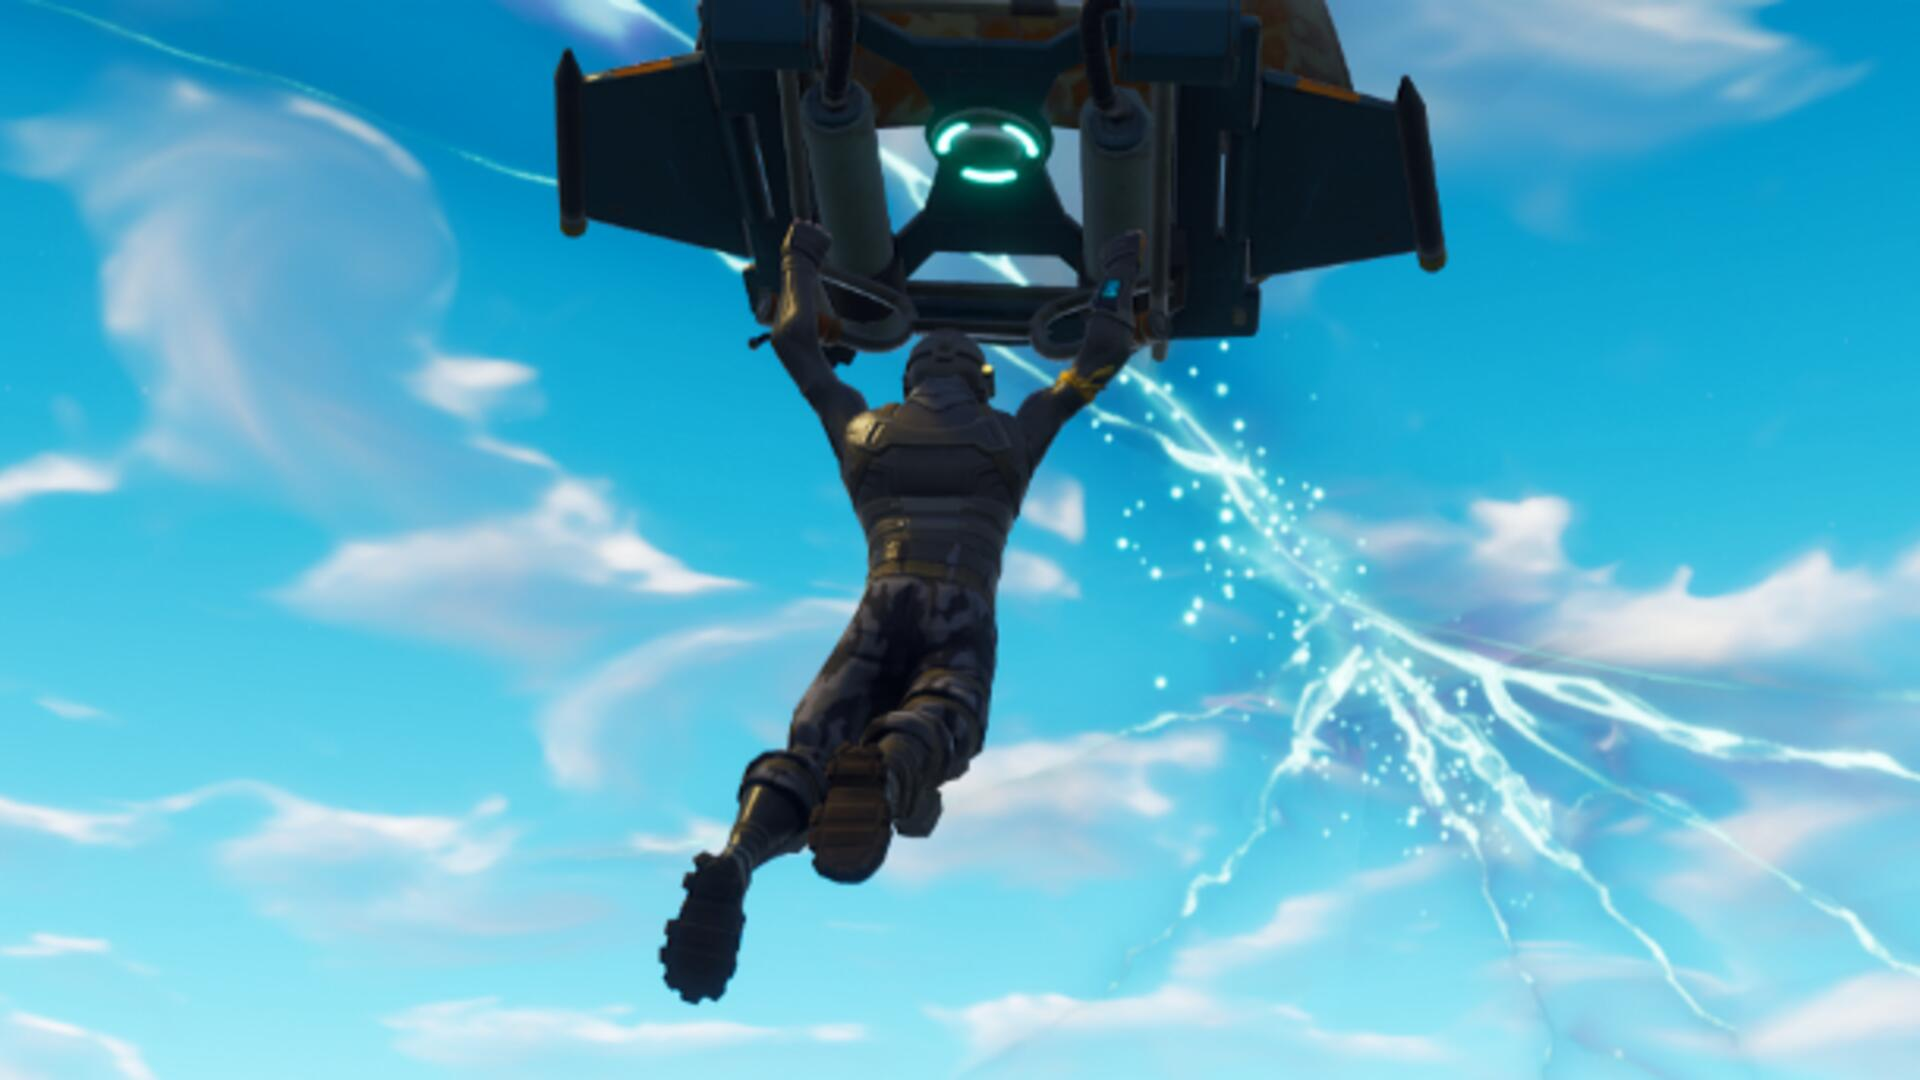 The Fortnite Countdown Timer Hits Zero, the Rocket Launches, and a Tear Appears in the Sky